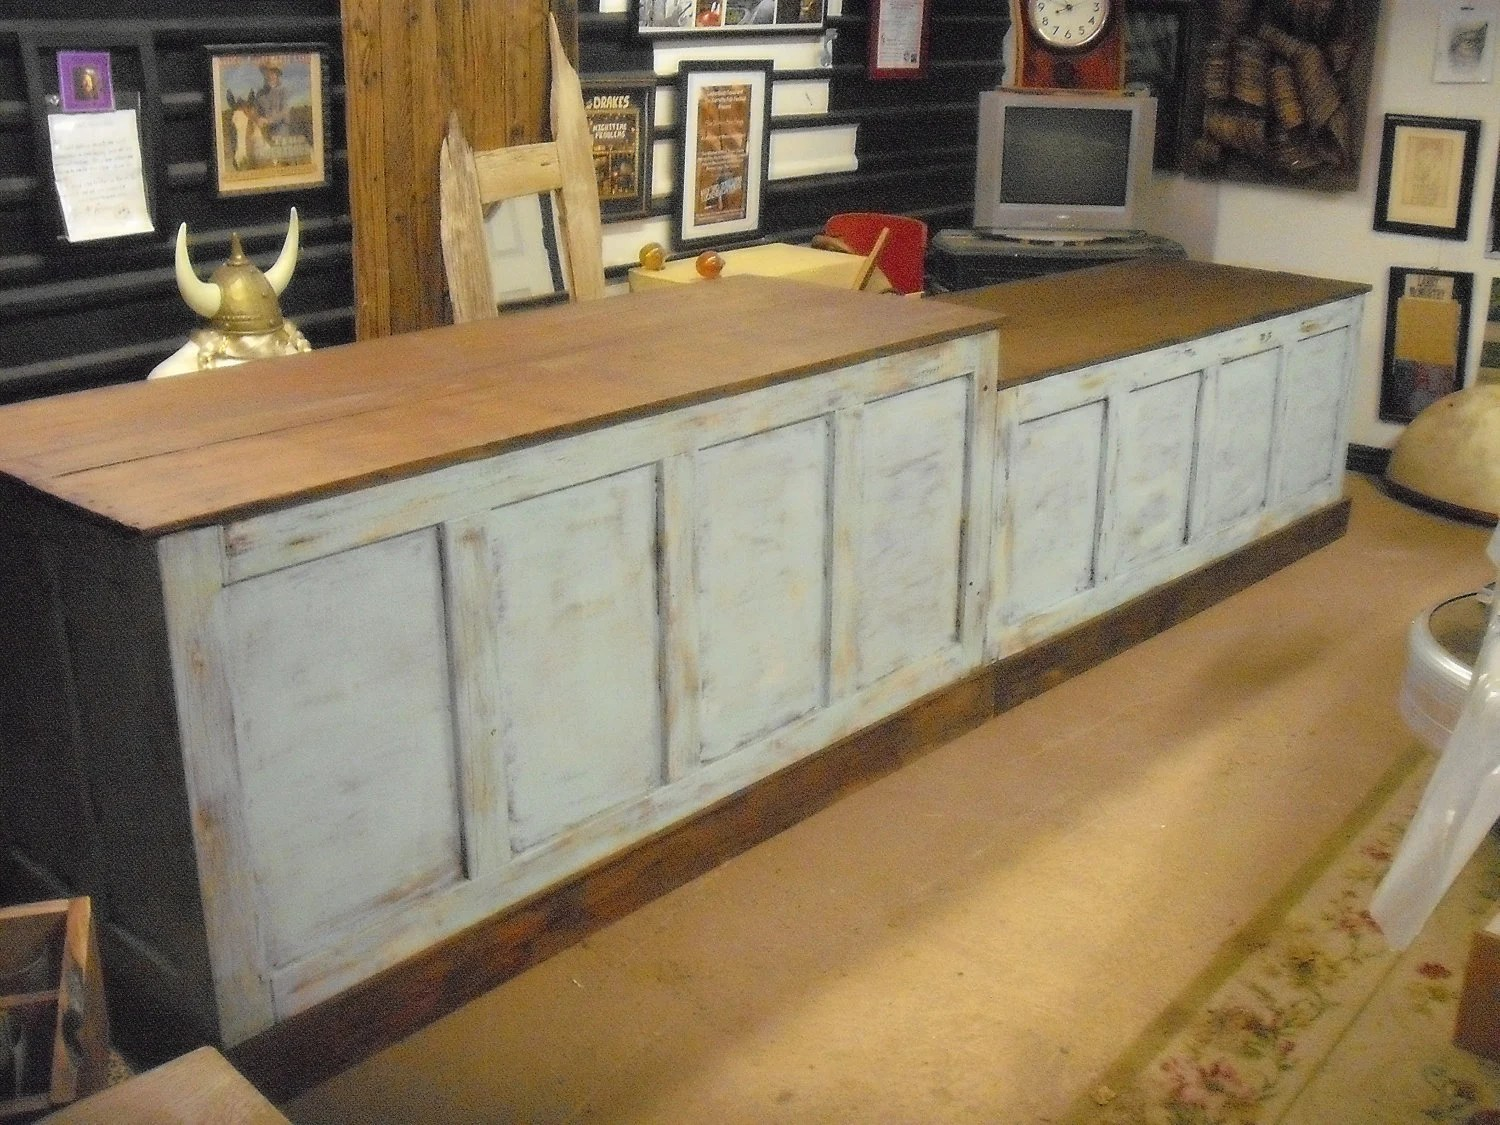 Pine Kitchen Island Unit Distressed Retail Check-out Counter Kitchen Island / Bar